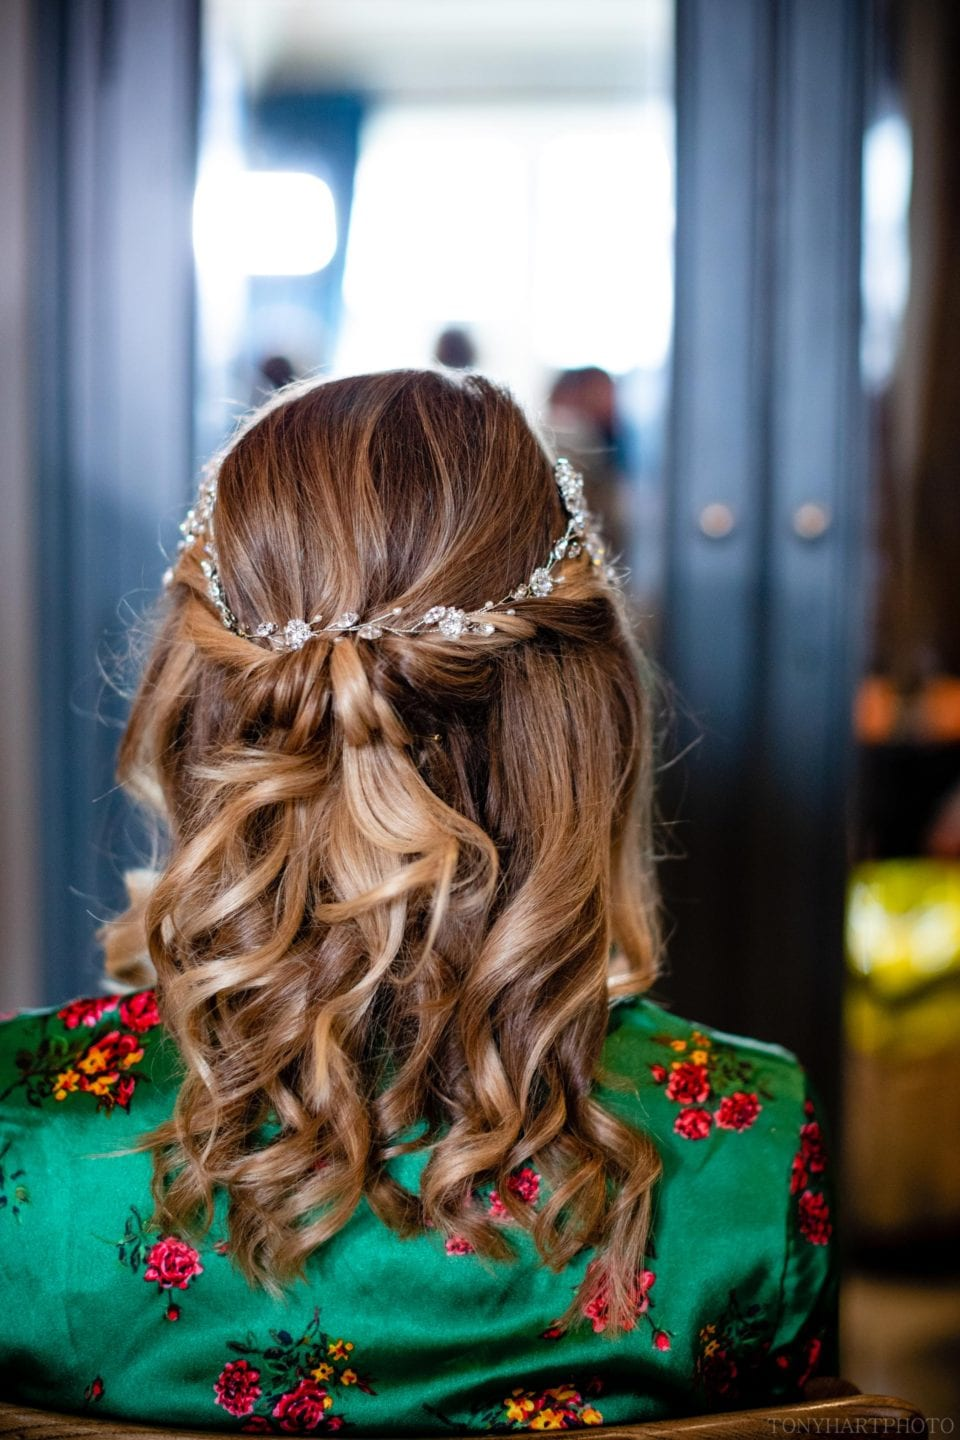 The back of Anna's hair